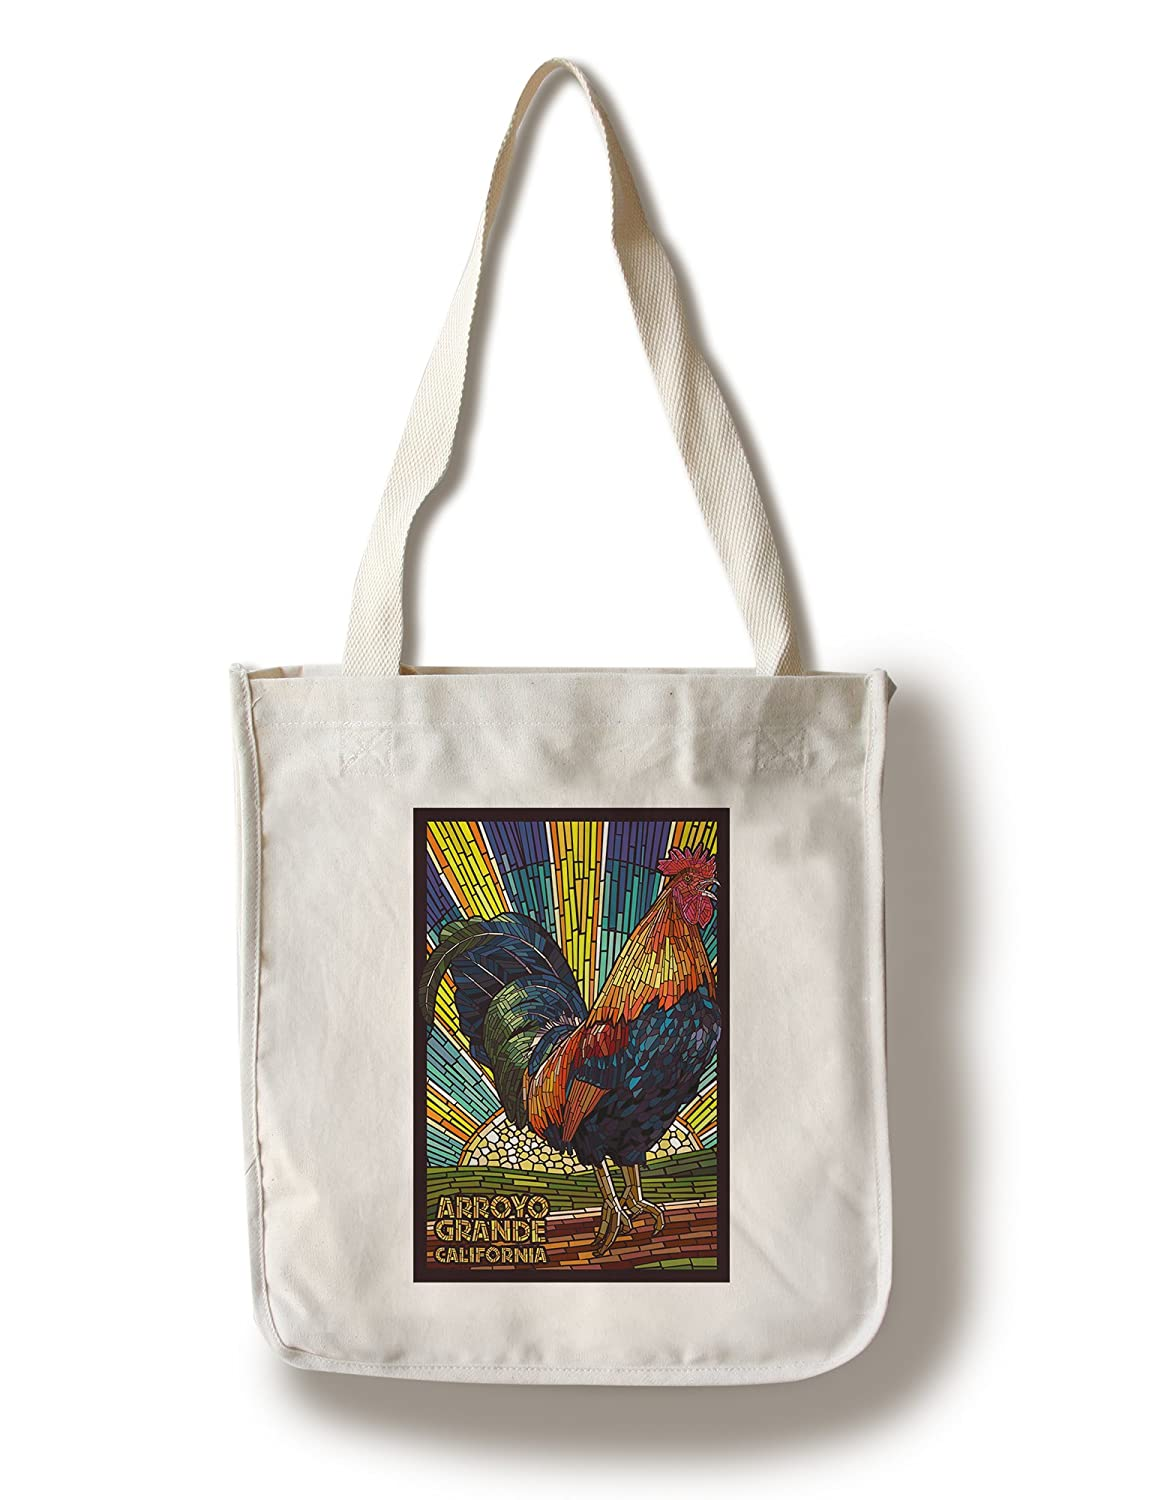 Arroyo Grande、カリフォルニア – Roosterモザイク Canvas Tote Bag LANT-47030-TT B01841L4YC Canvas Tote Bag